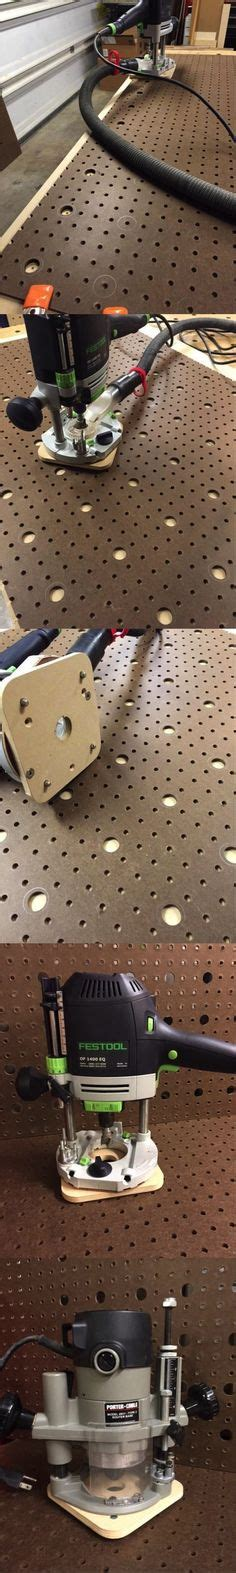 Hole Extensions Off Of 8020 Rail For Track Saw Guide Diy Multifunction Table Mft Pinterest Mft Drilling Template